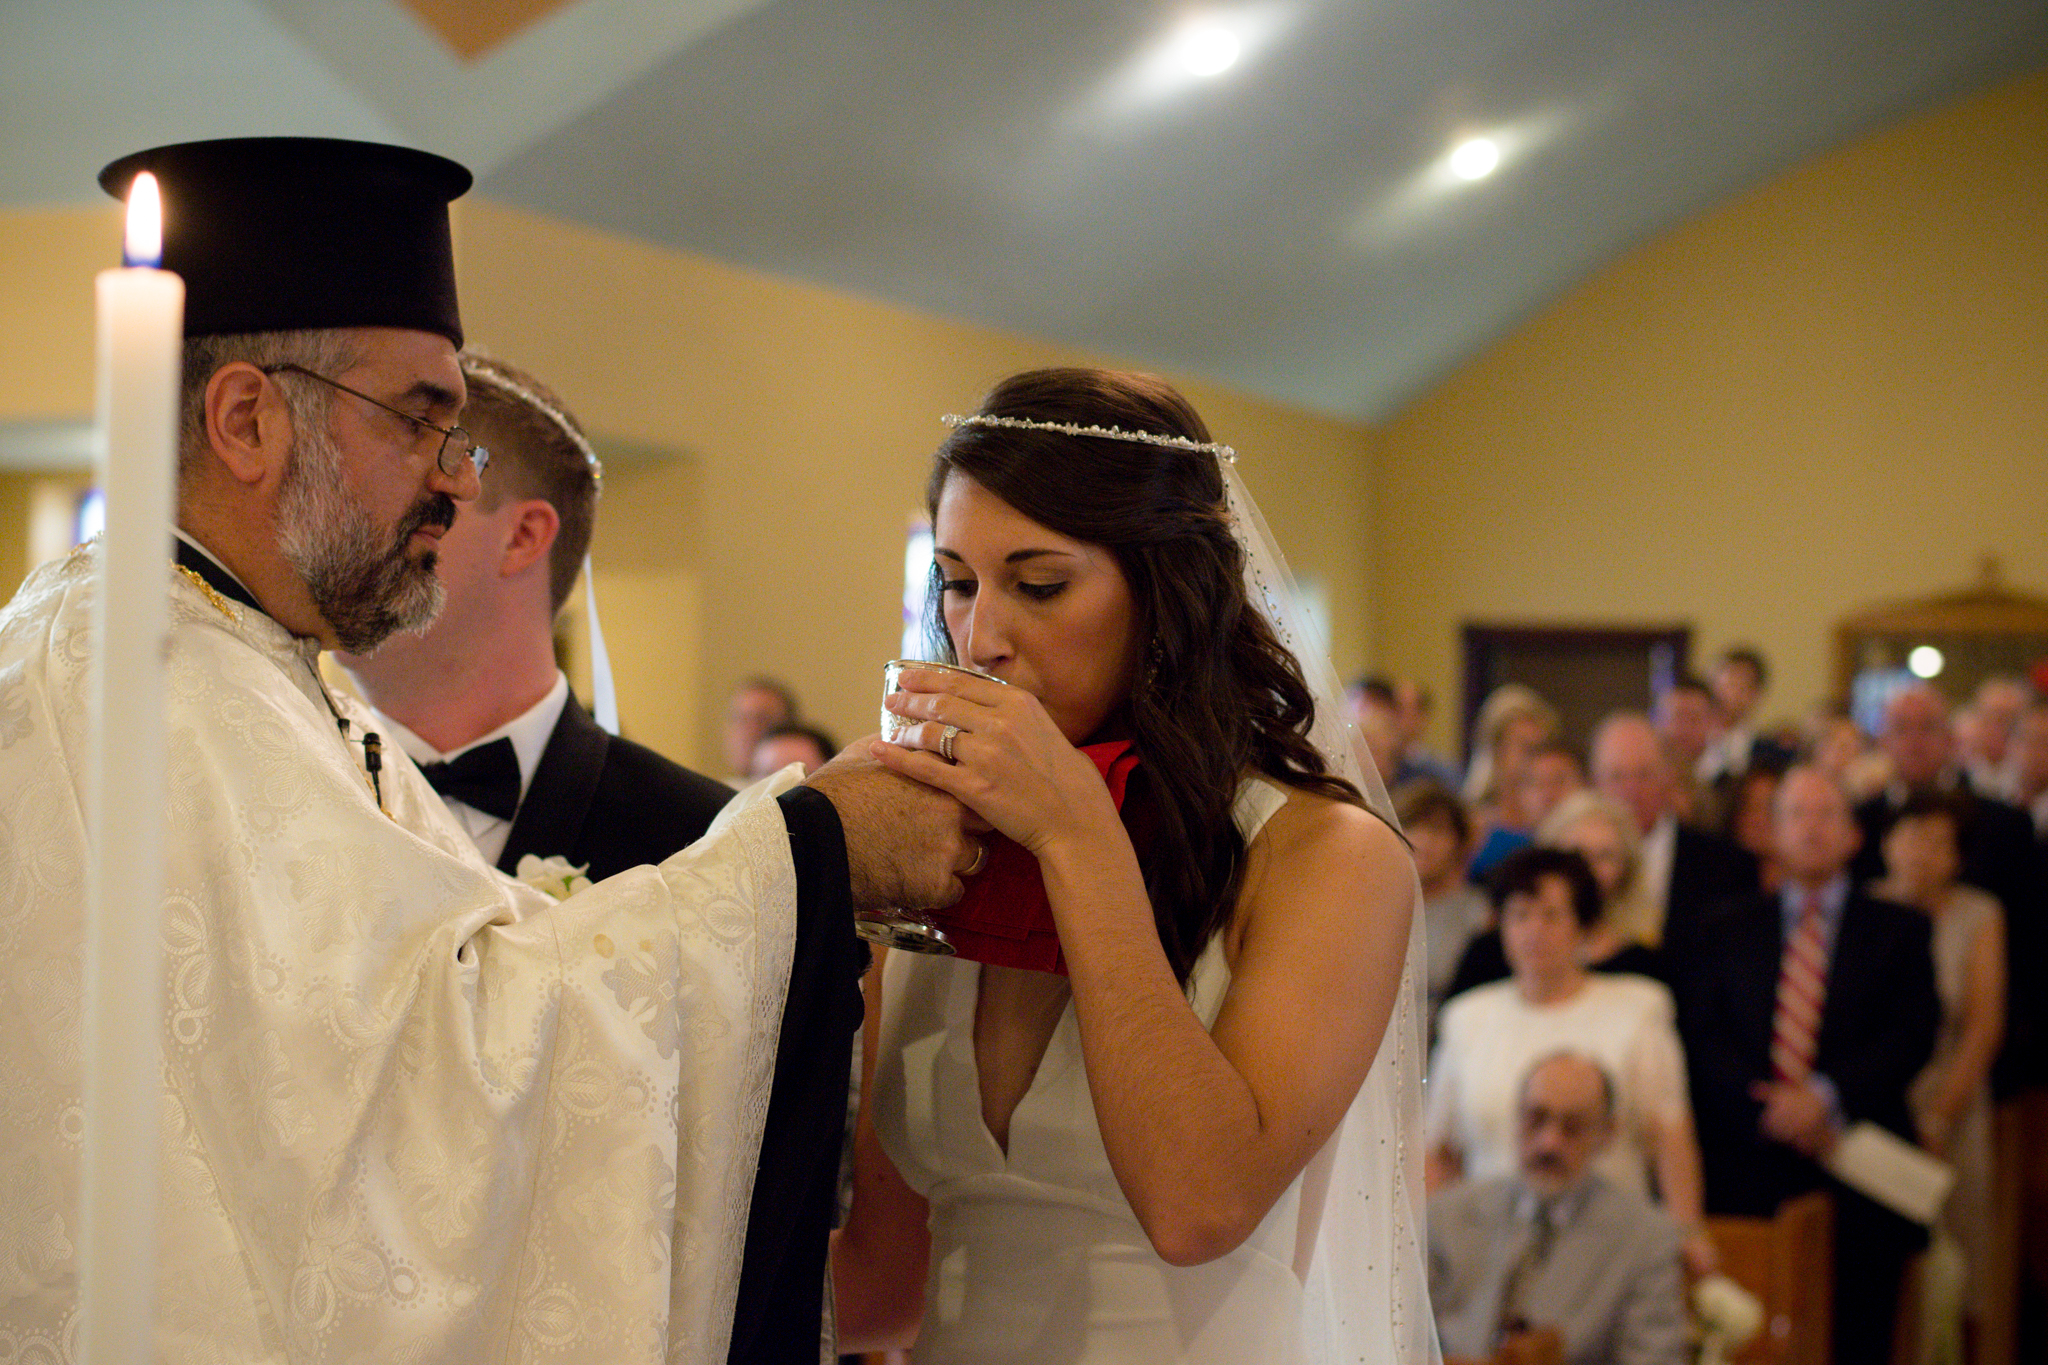 greek orthodox wedding (62 of 118).JPG